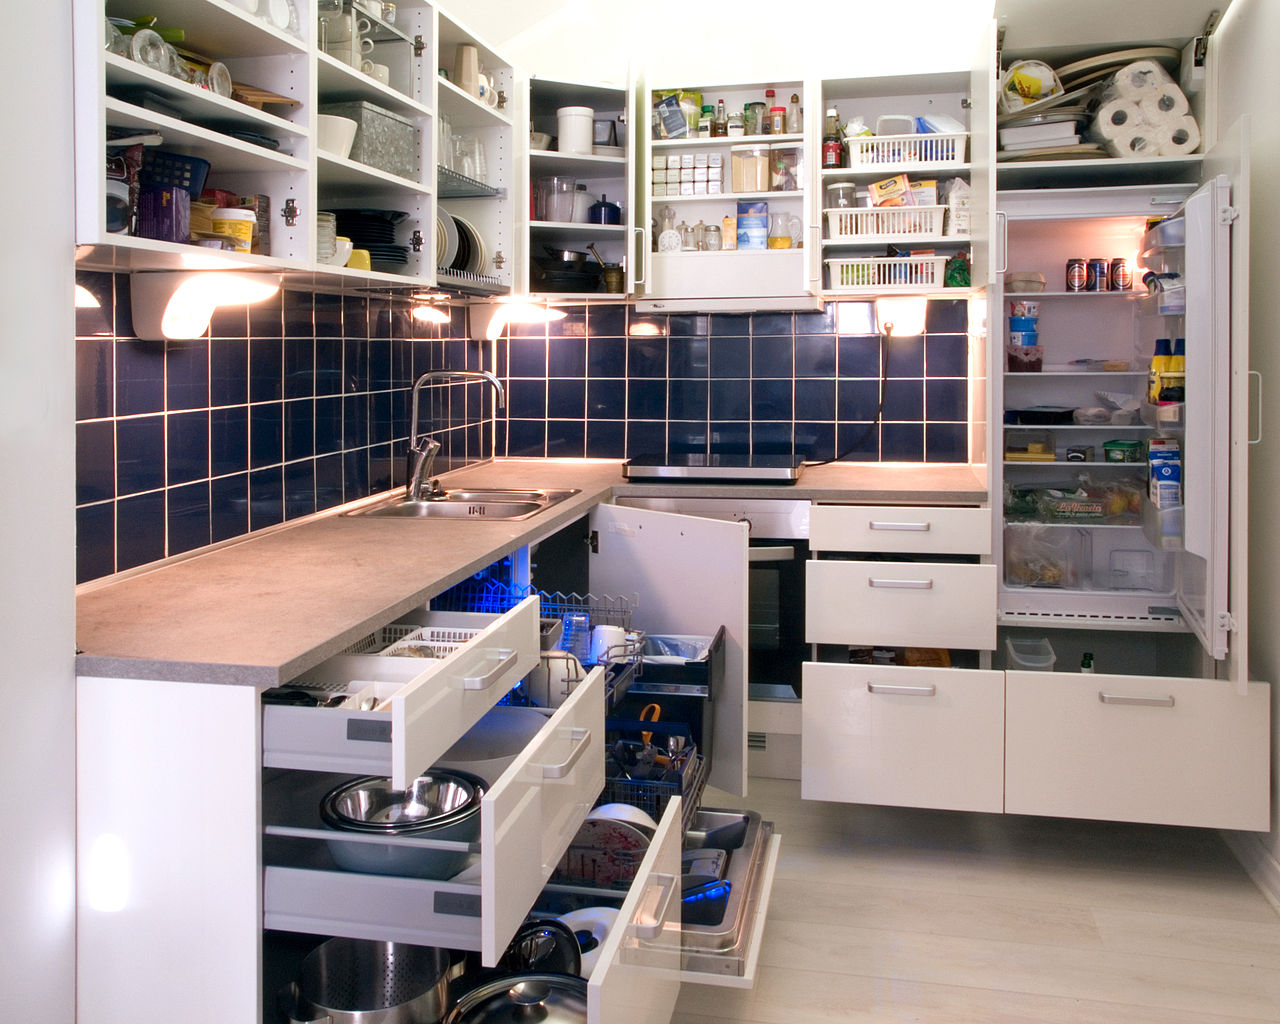 Lifestyle Kitchen Units Of File White Kitchen With Cabinet Doors And Drawers Opened